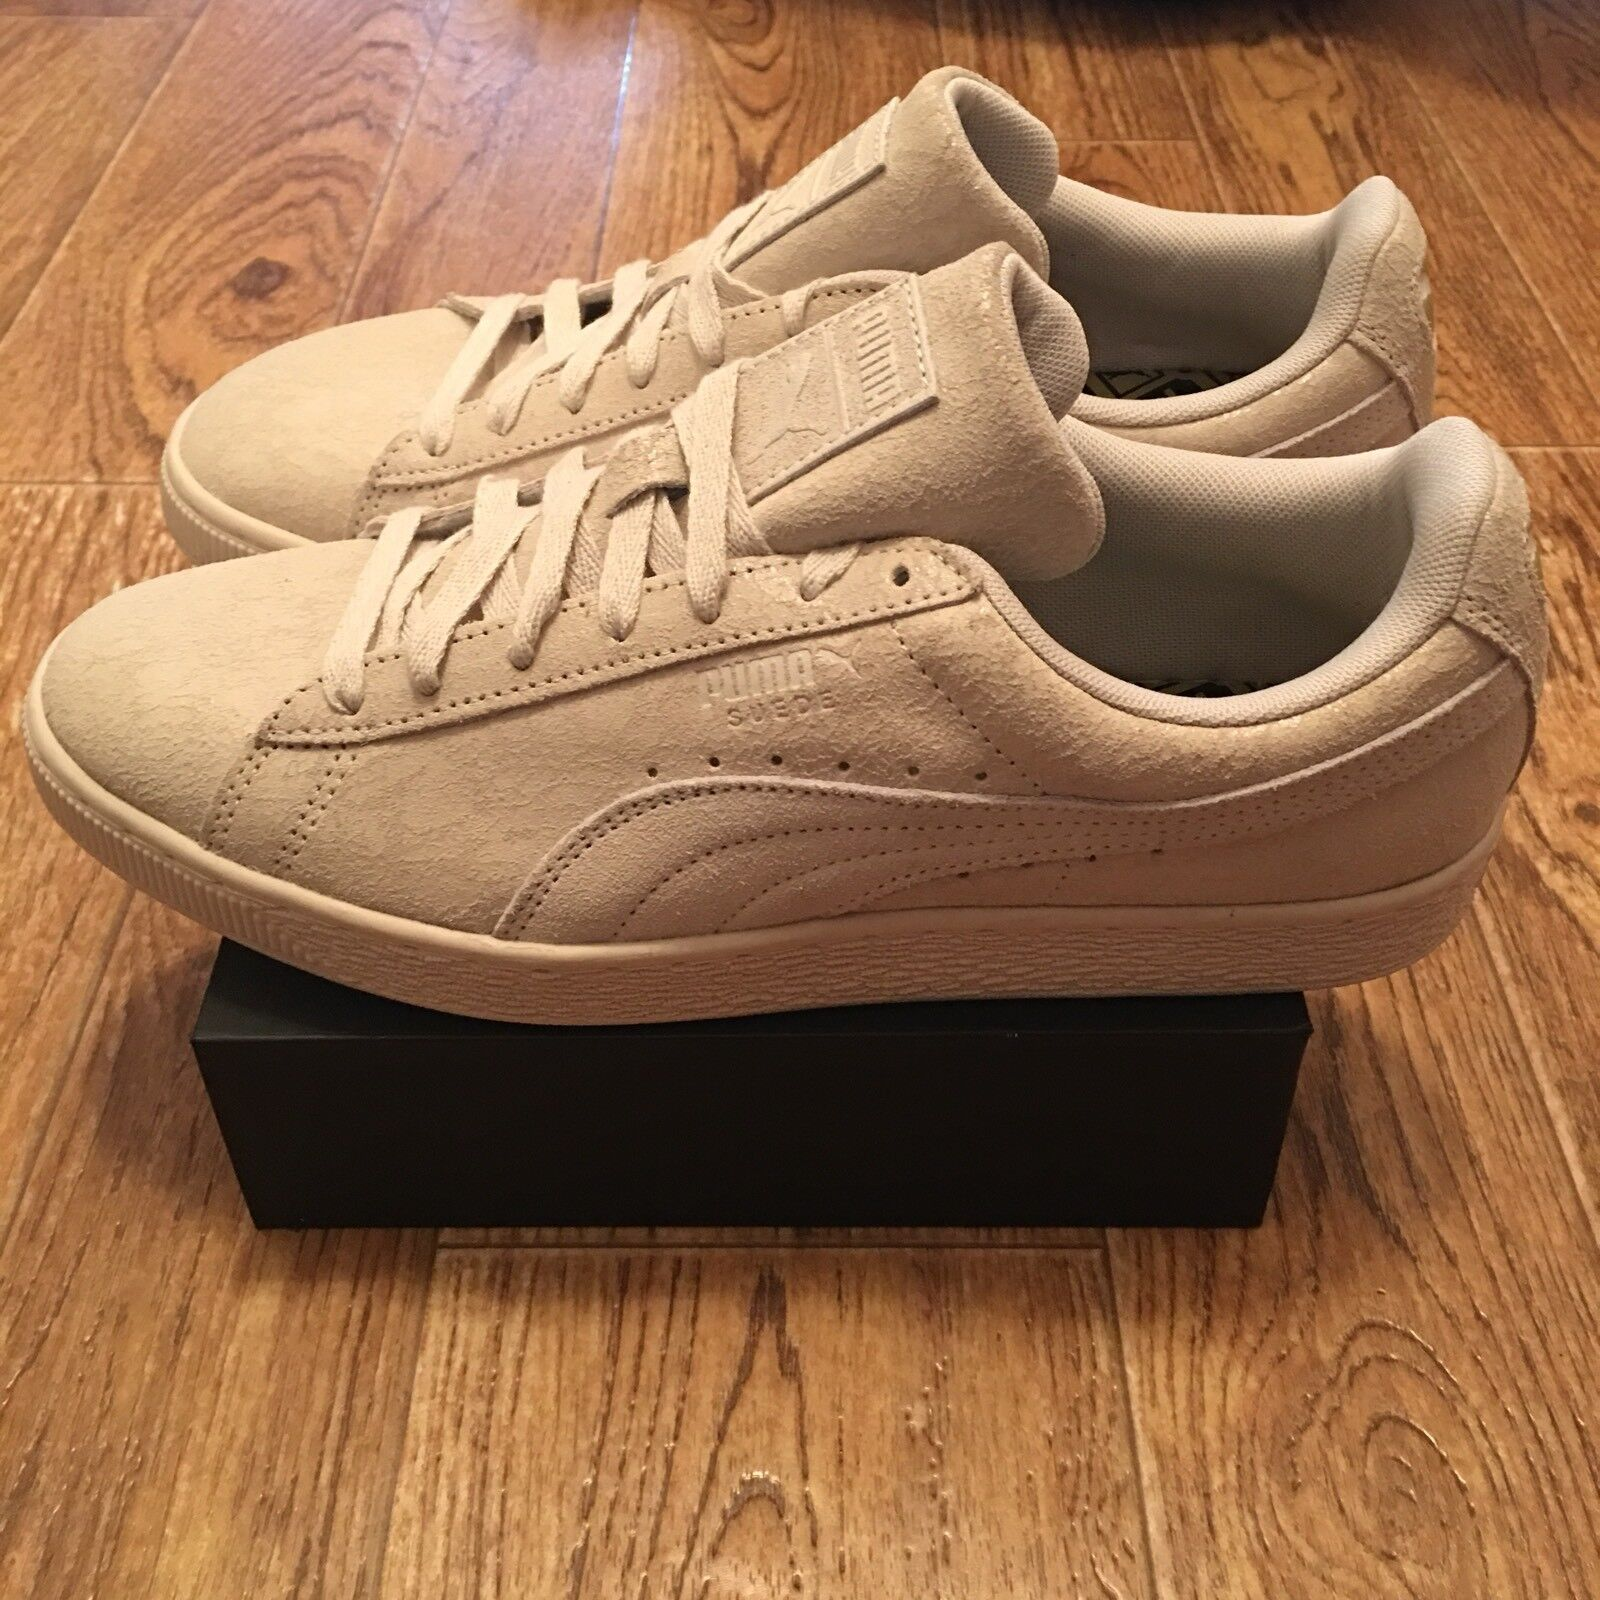 Puma Suede Remaster Womens 361110-02 Birch Athletic Shoes Sneakers Wmns Size 11